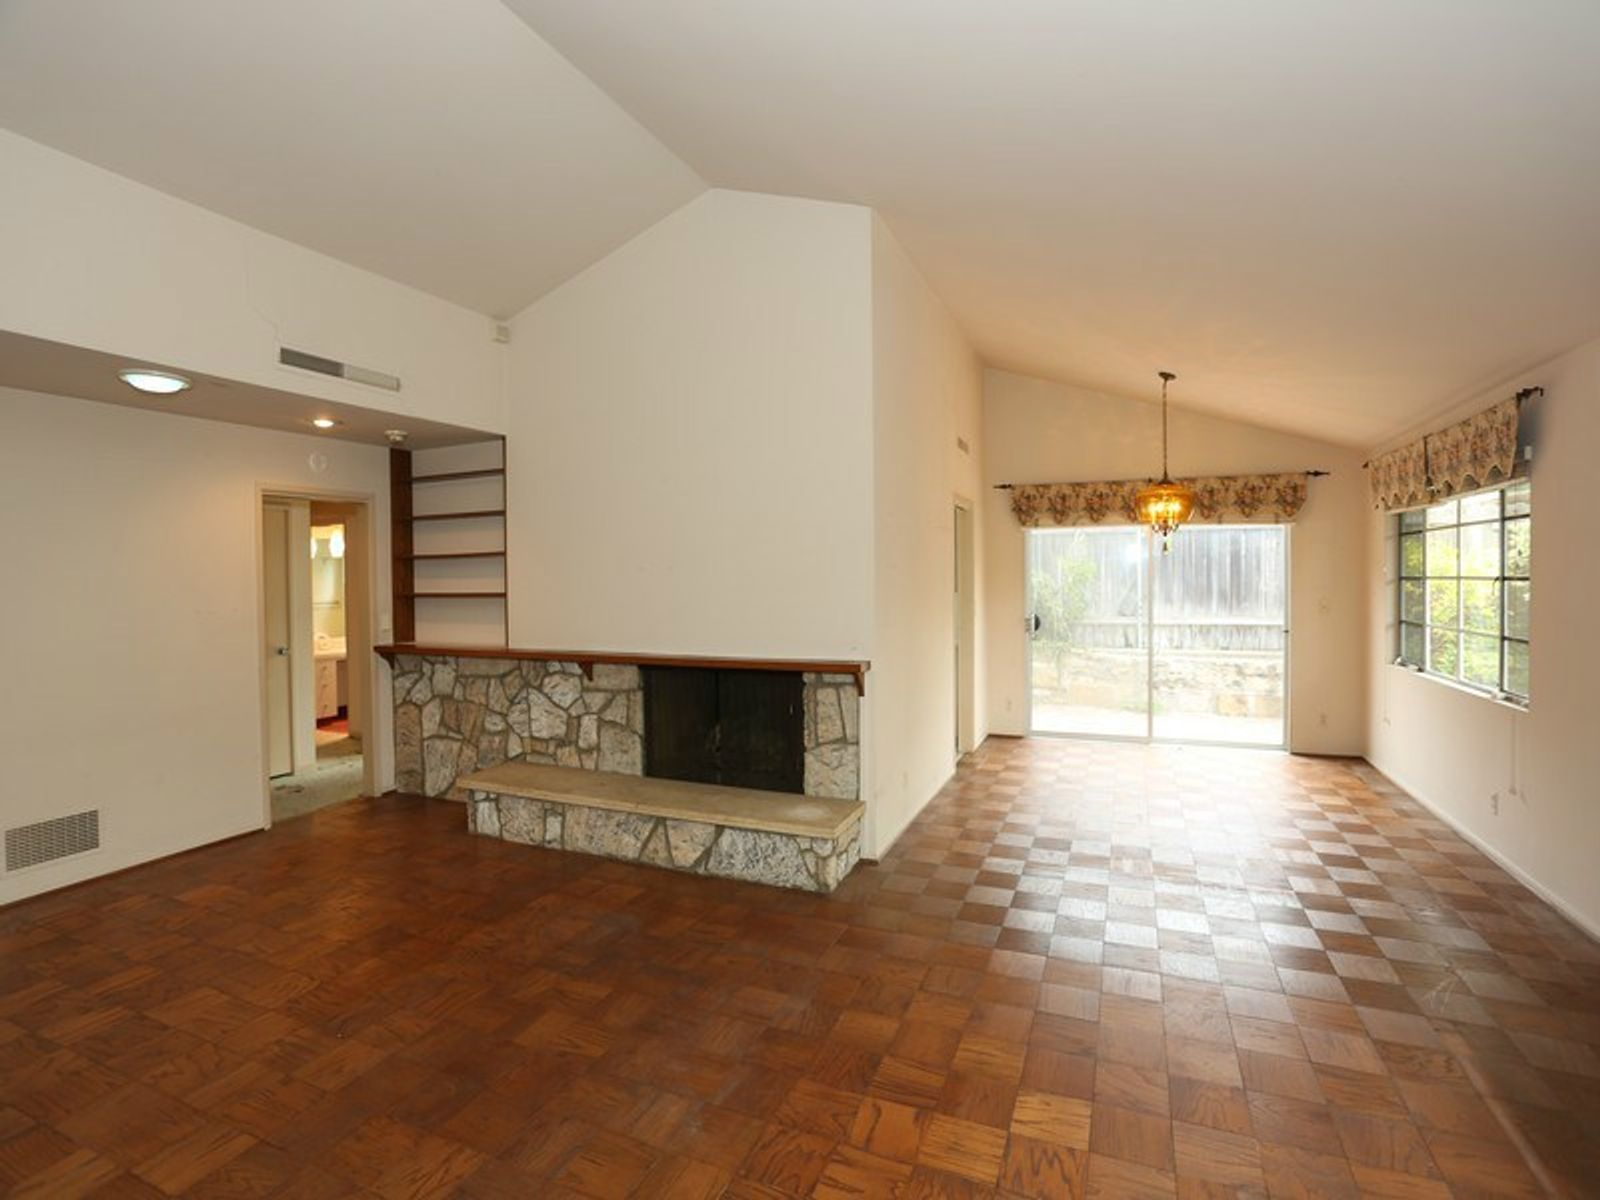 400 East Pedregosa Unit I